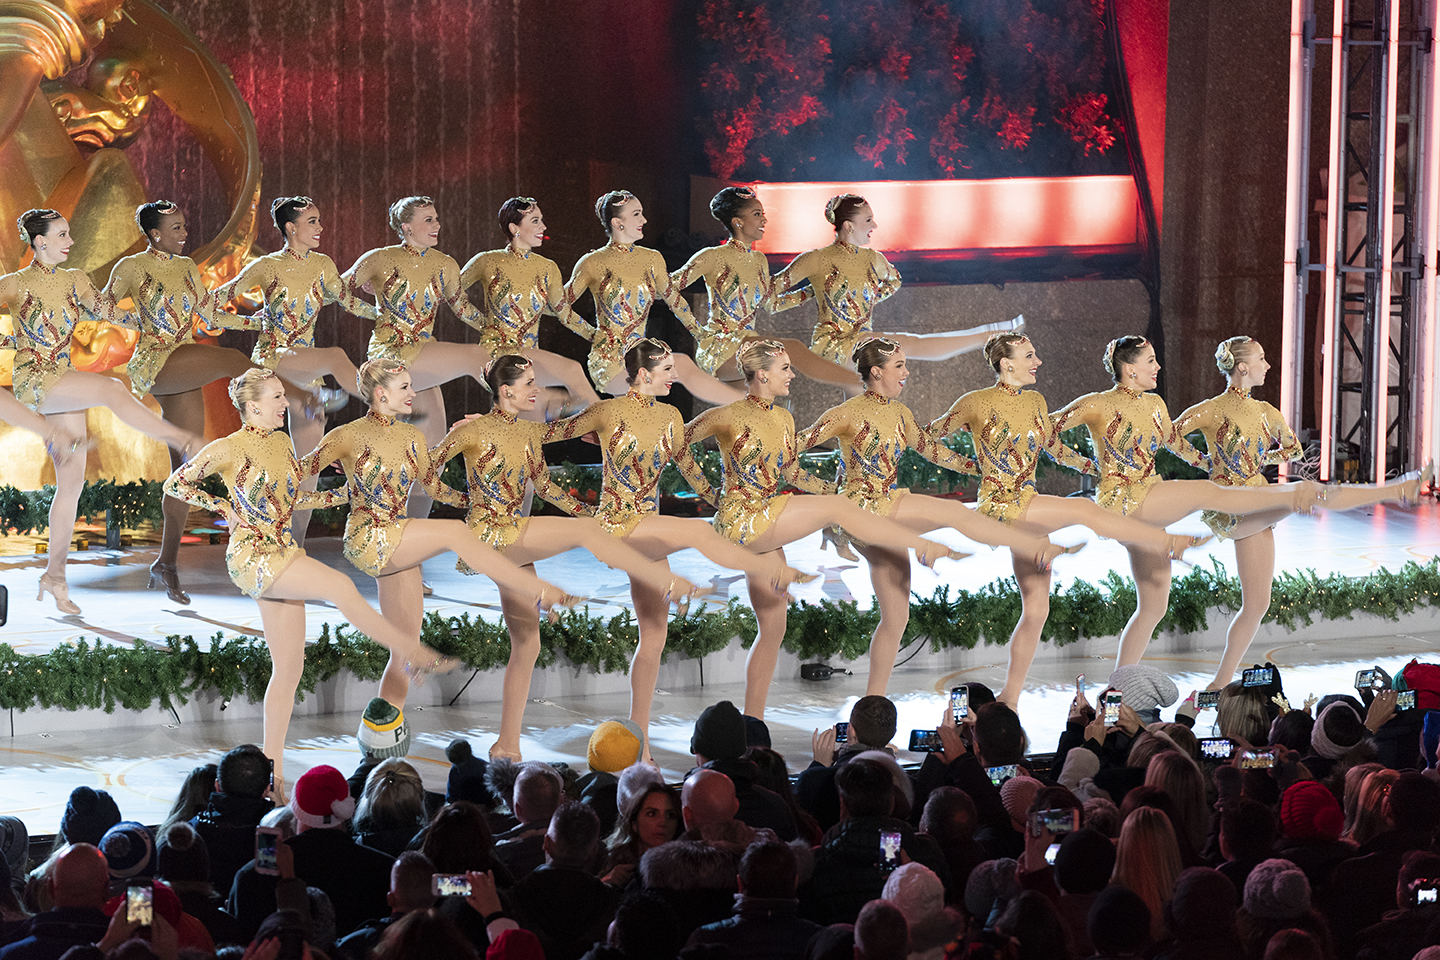 New Yrok, NY - November 28, 2018: The Radio City Rockettes perform during 86th Annual Rockefeller Center Christmas Tree Lighting Ceremony at Rockefeller Center (Photo: Lev Radin)